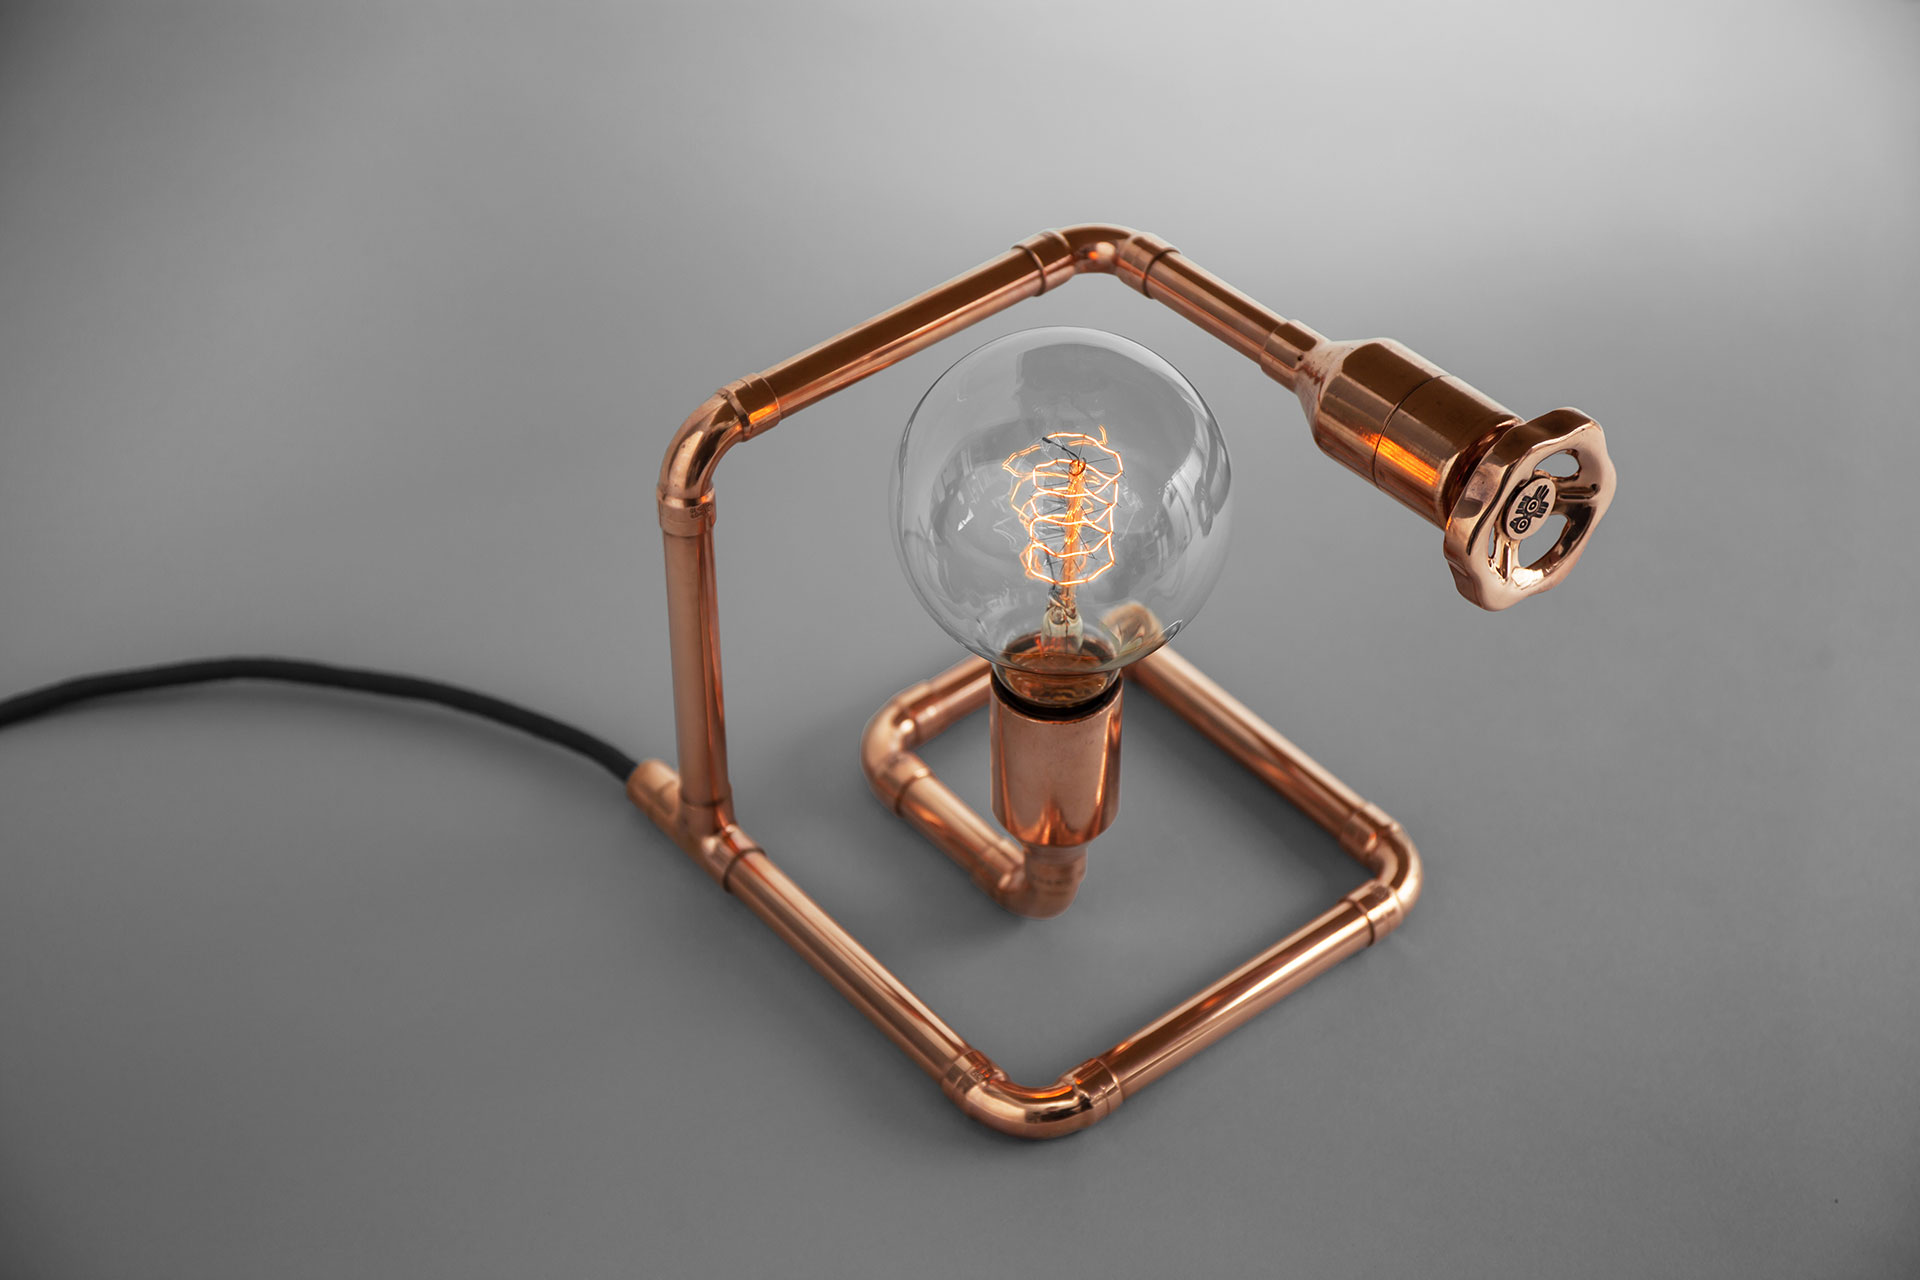 Unique dimmable table lamp in trendy copper metal finish with vintage Edison bulb inspired by loft design